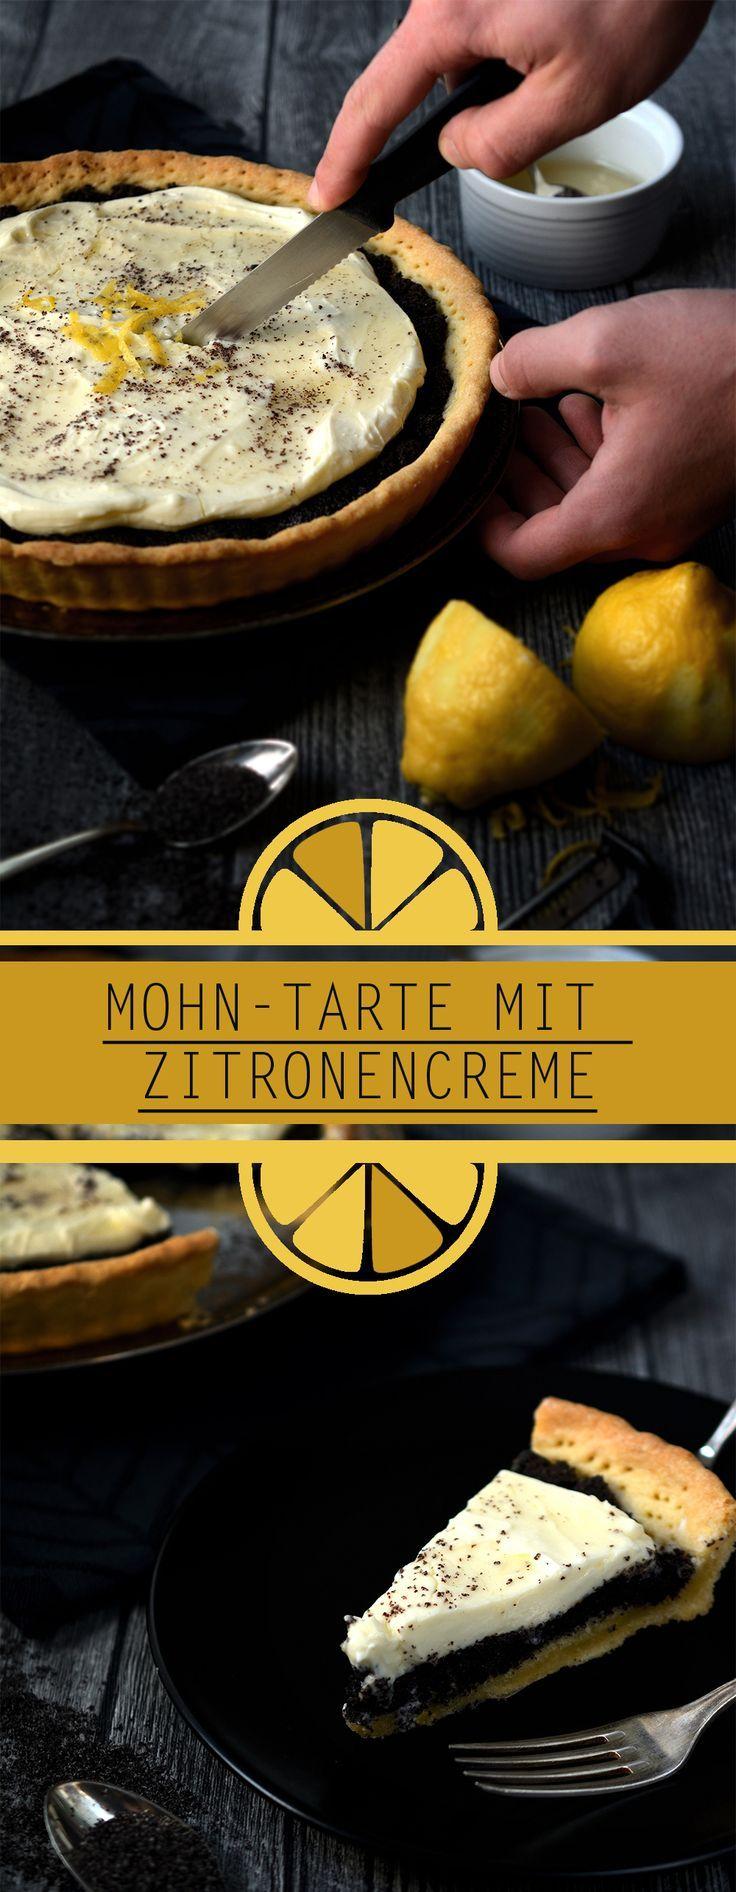 MohnTarte mit Zitronencreme  Poppy Seed Tart with lemon cream  Blogger  Backrezepte